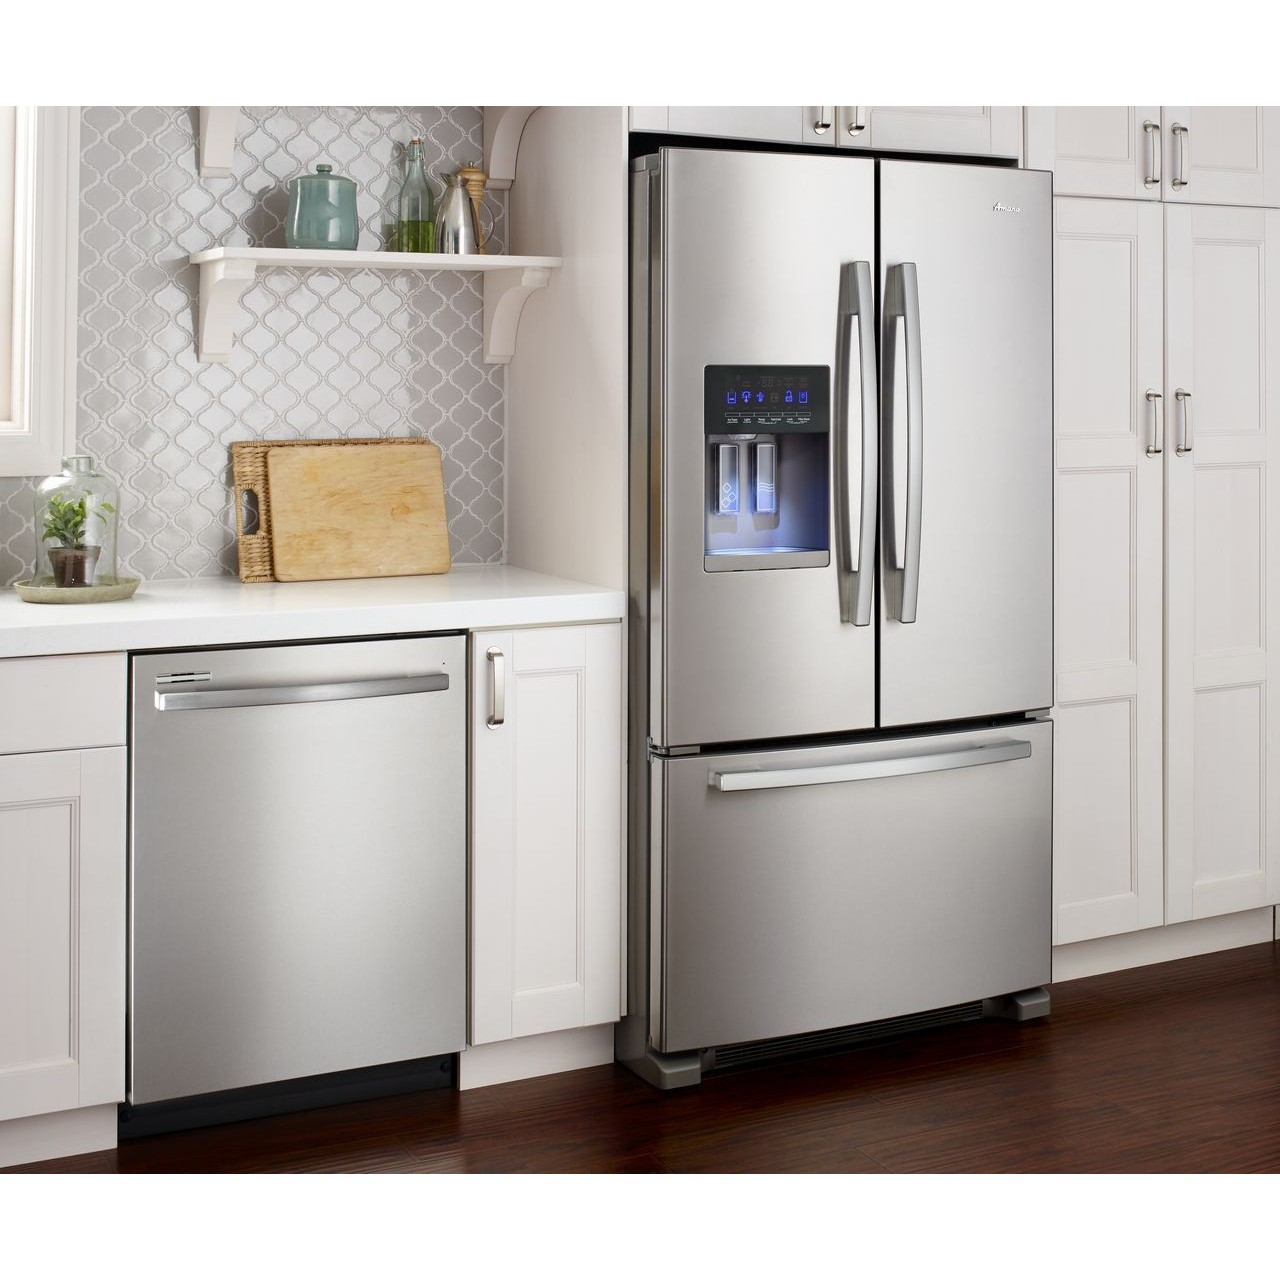 Luxury Refrigerators: Amana 25 Cu. Ft. French Door Refrigerator